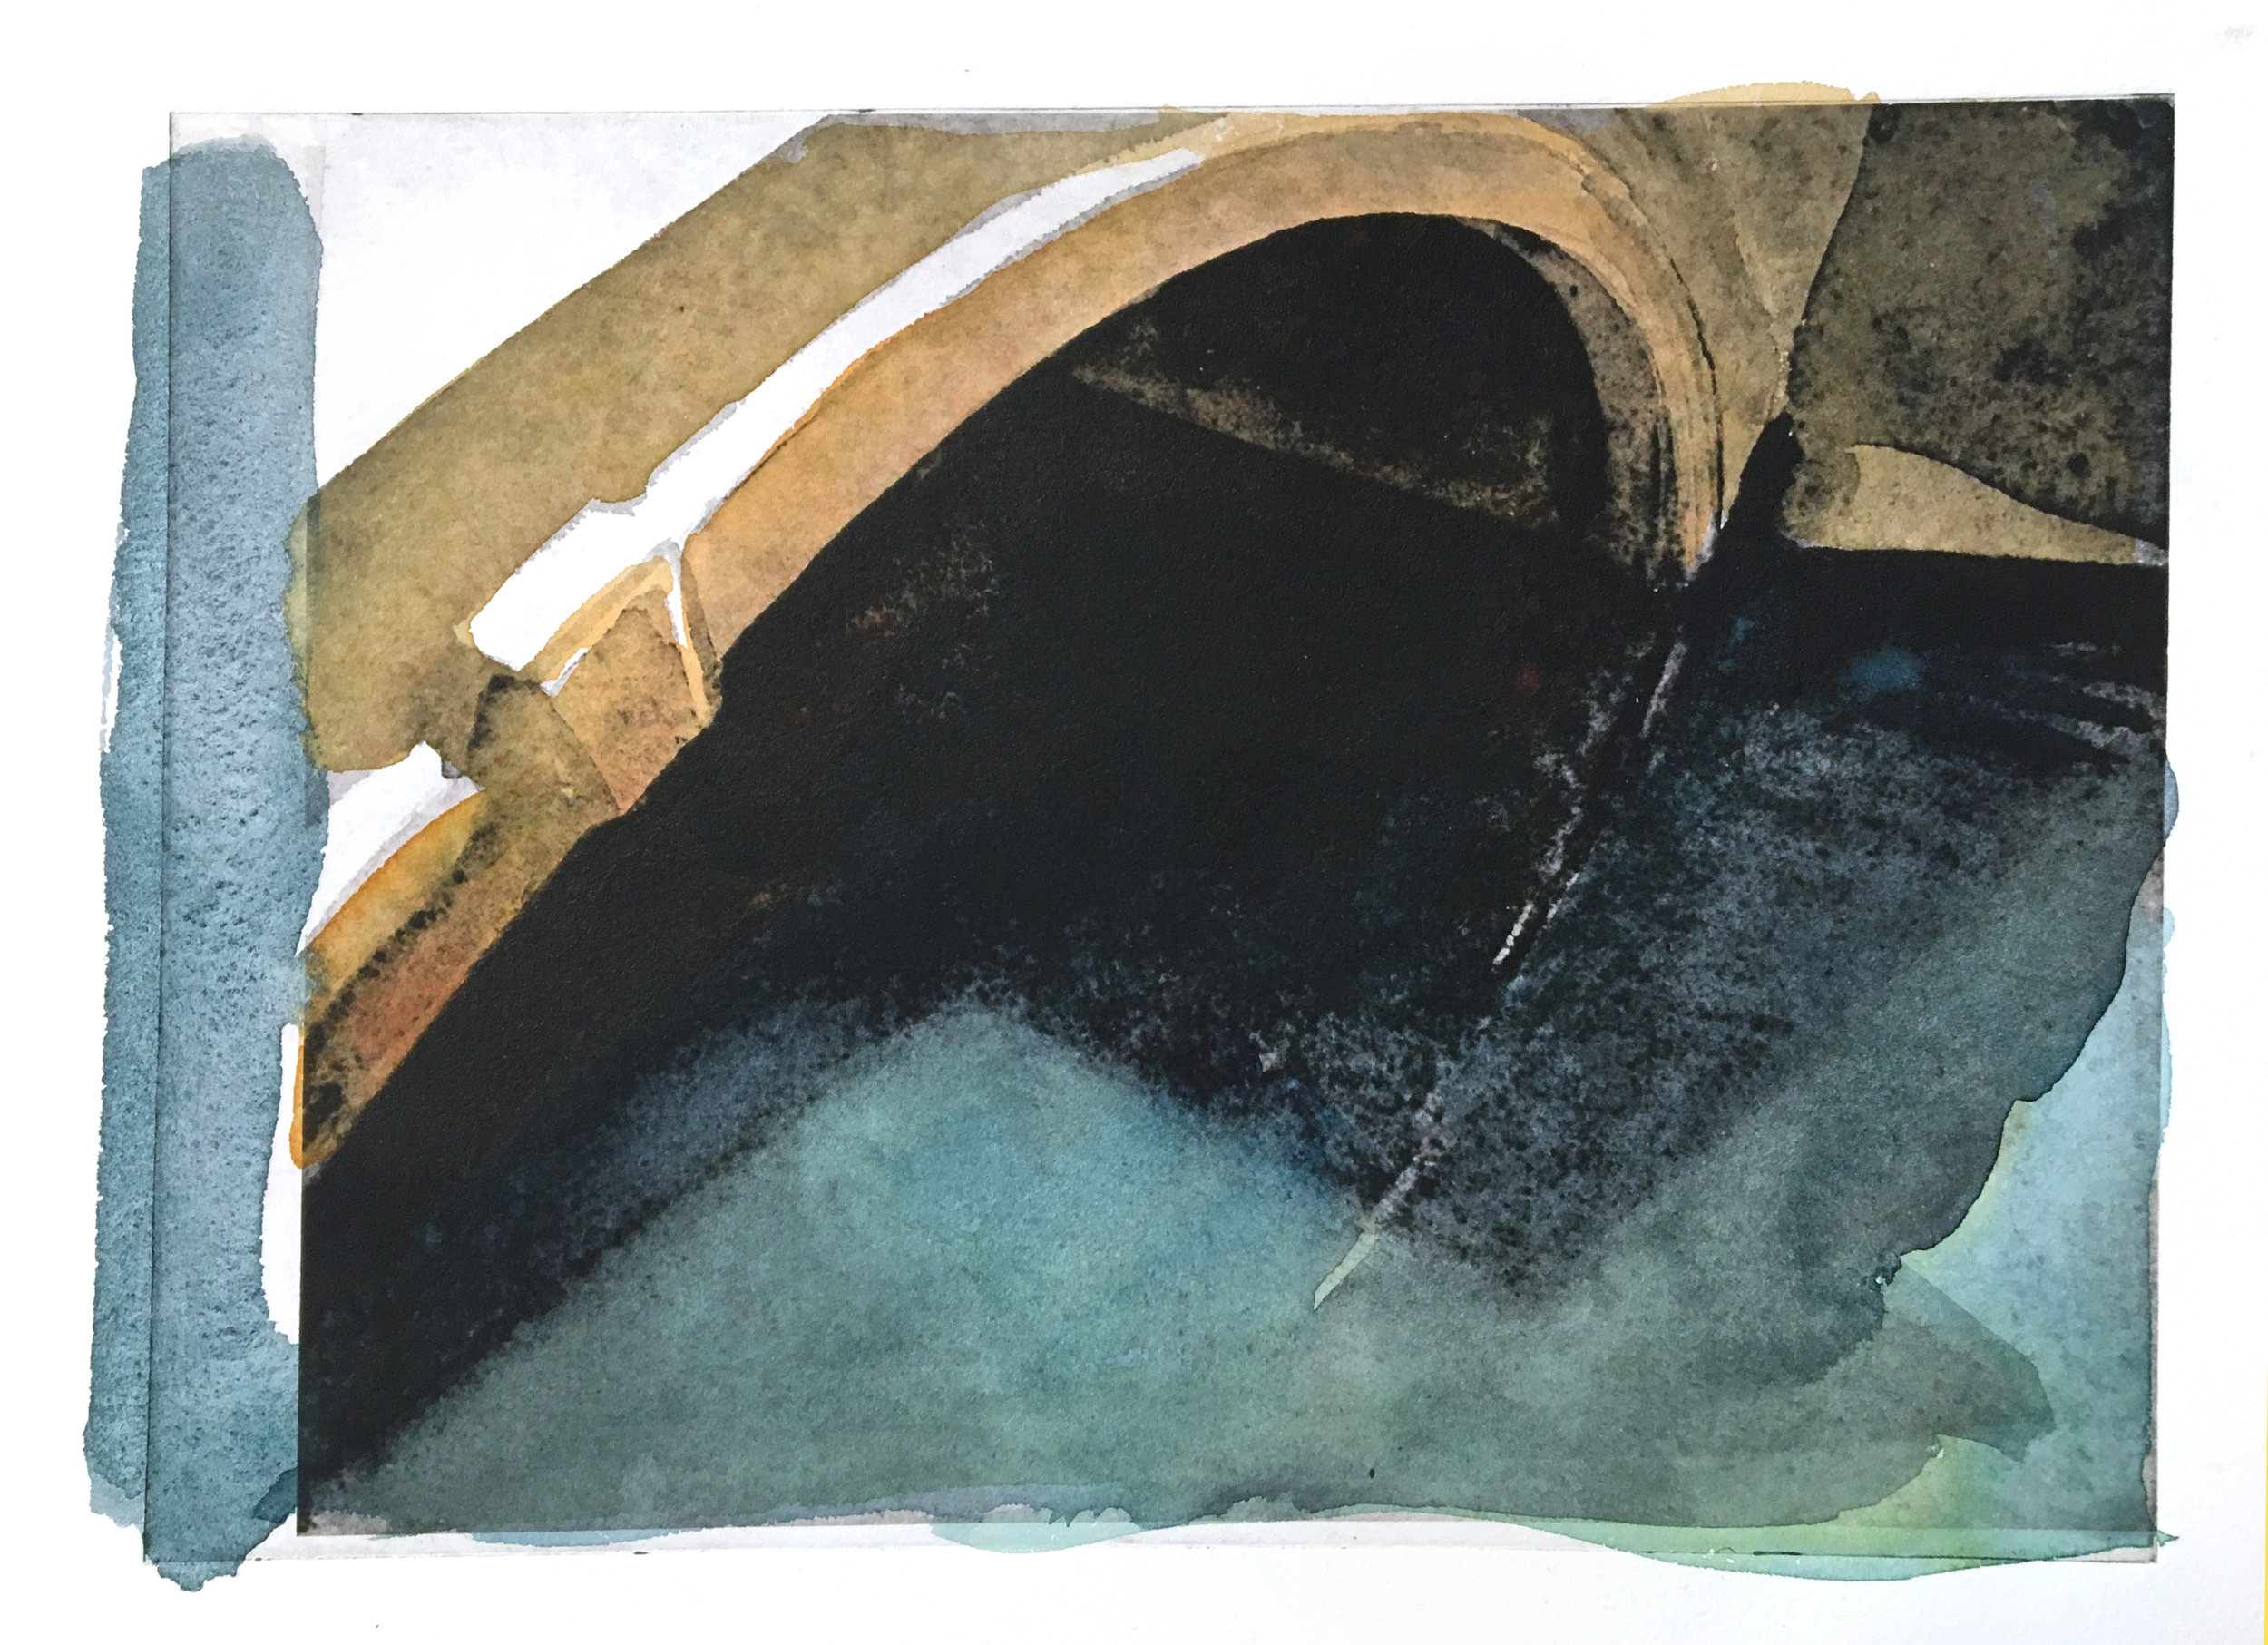 "Venice Bridge, 2018, intaglio with watercolor, 11"" x 13.5"""